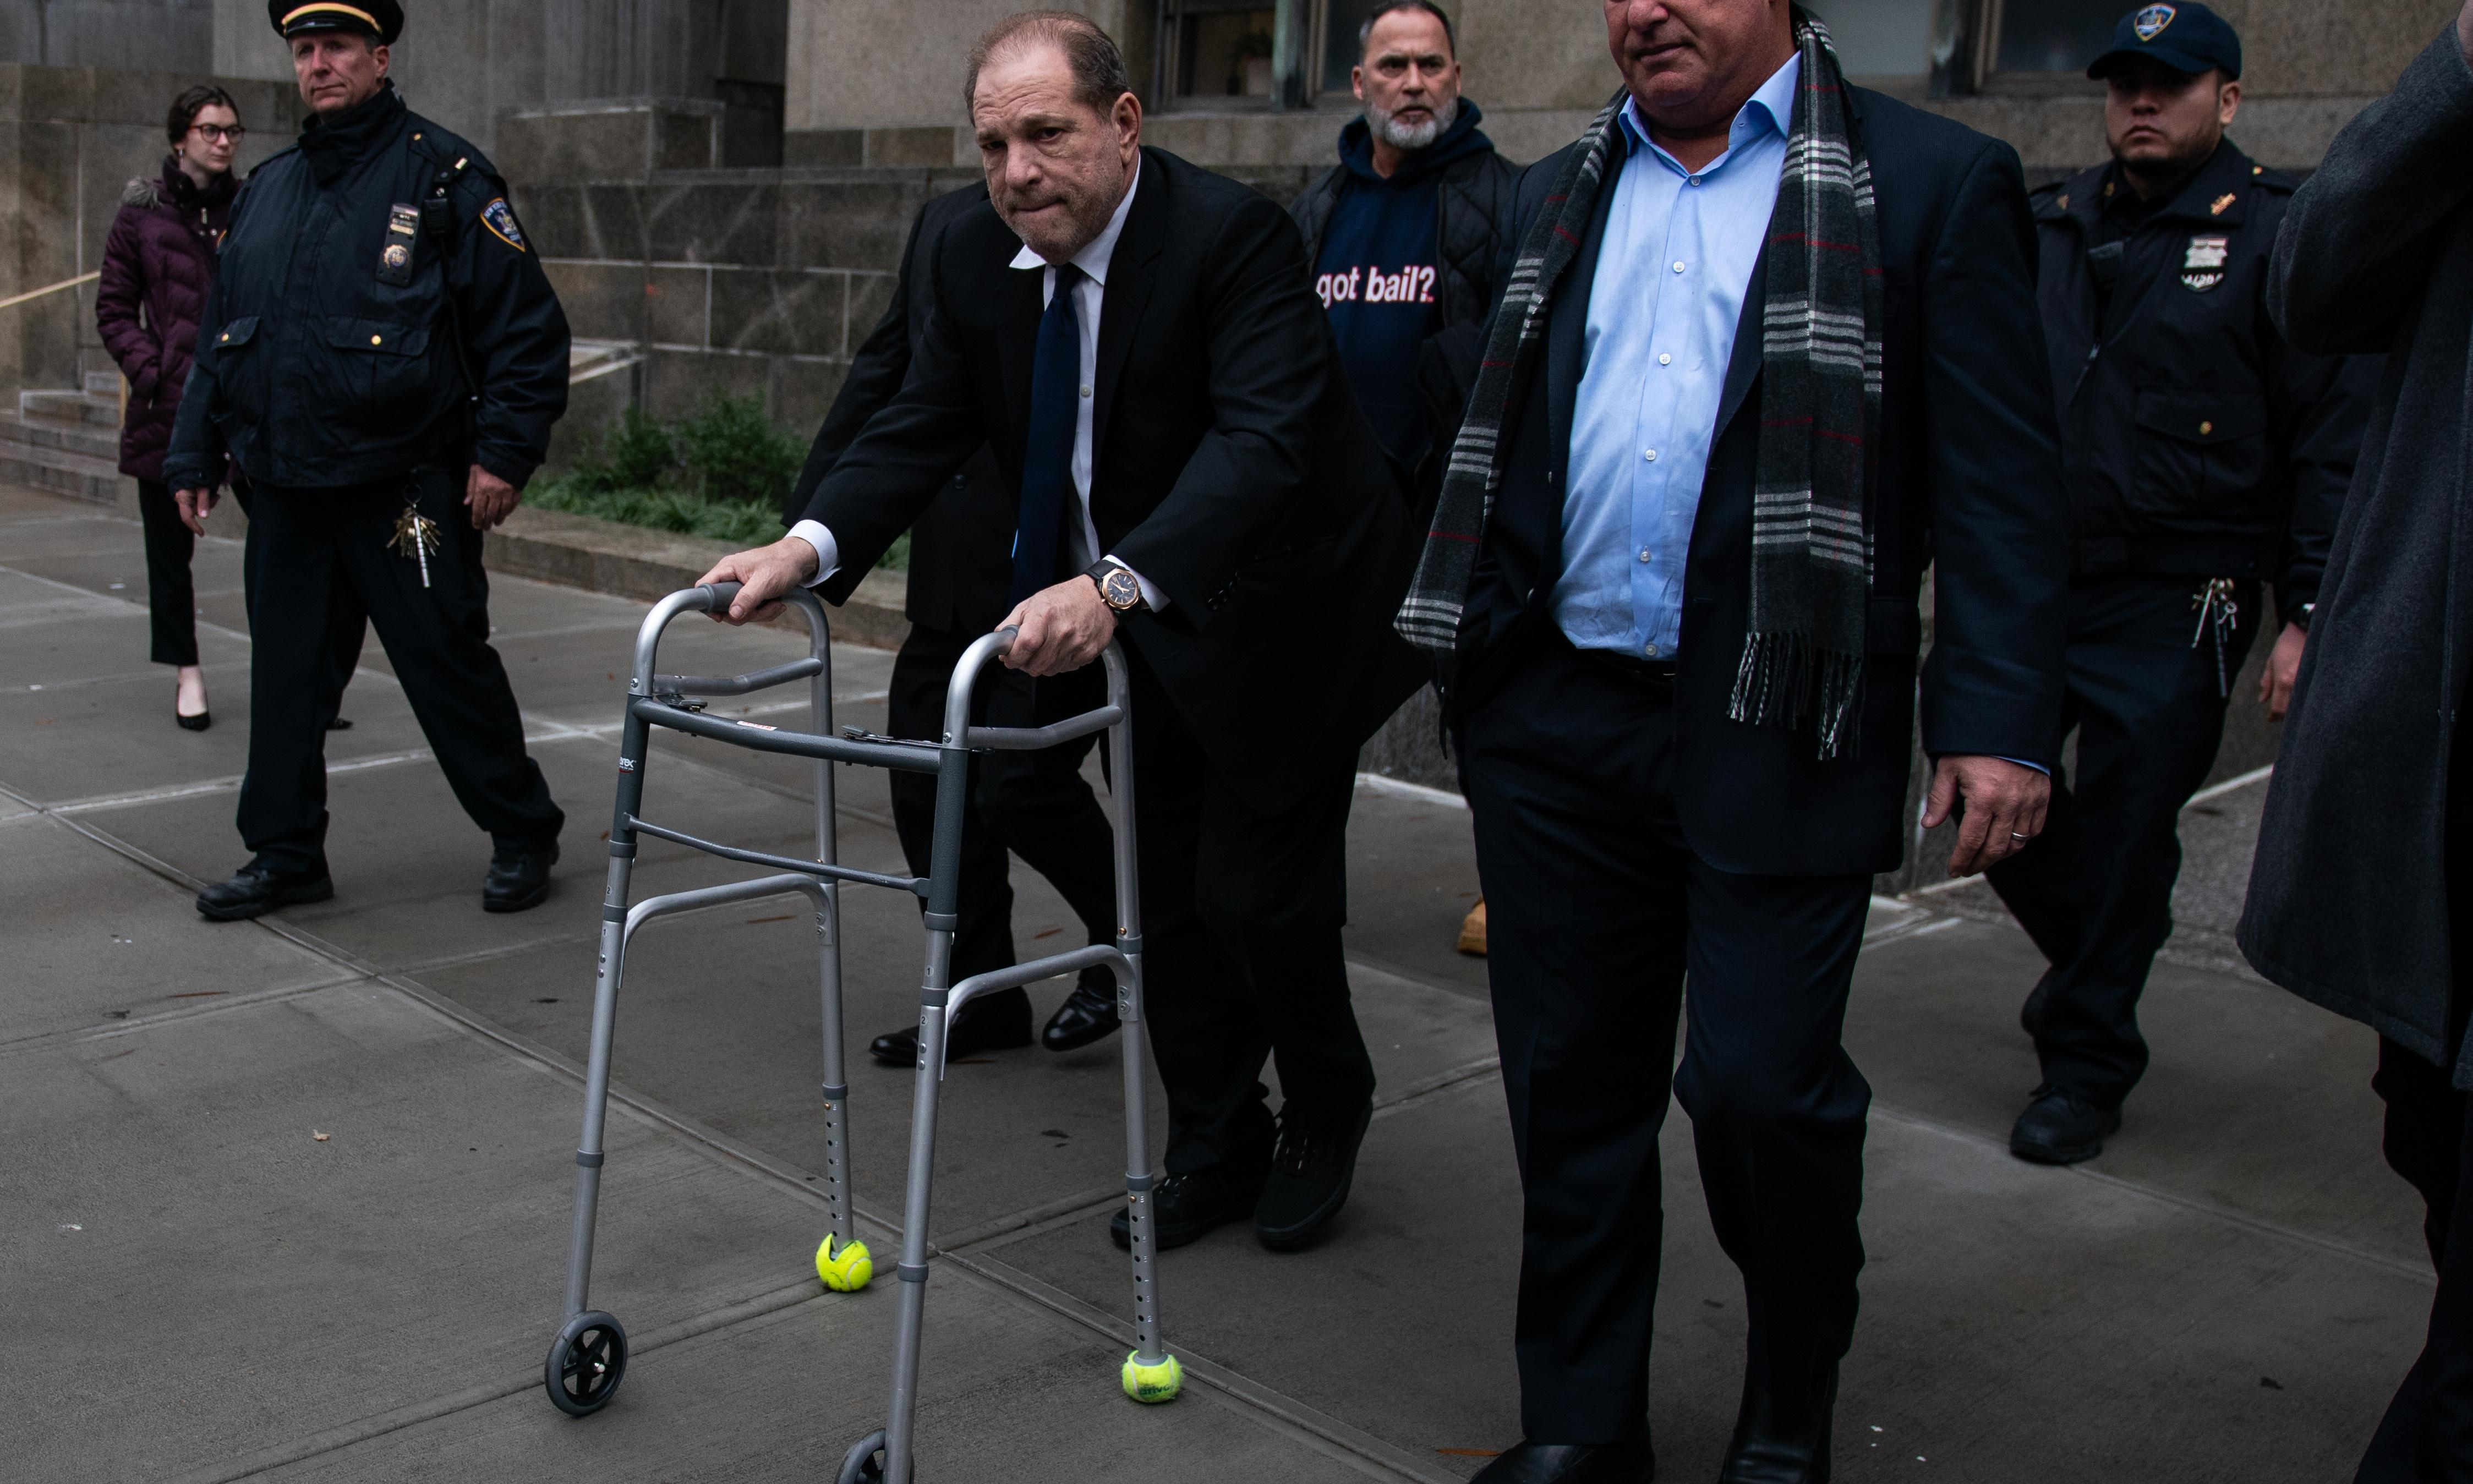 No chance Harvey: the charges against Weinstein are so serious his zimmer-frame shuffle just doesn't cut it